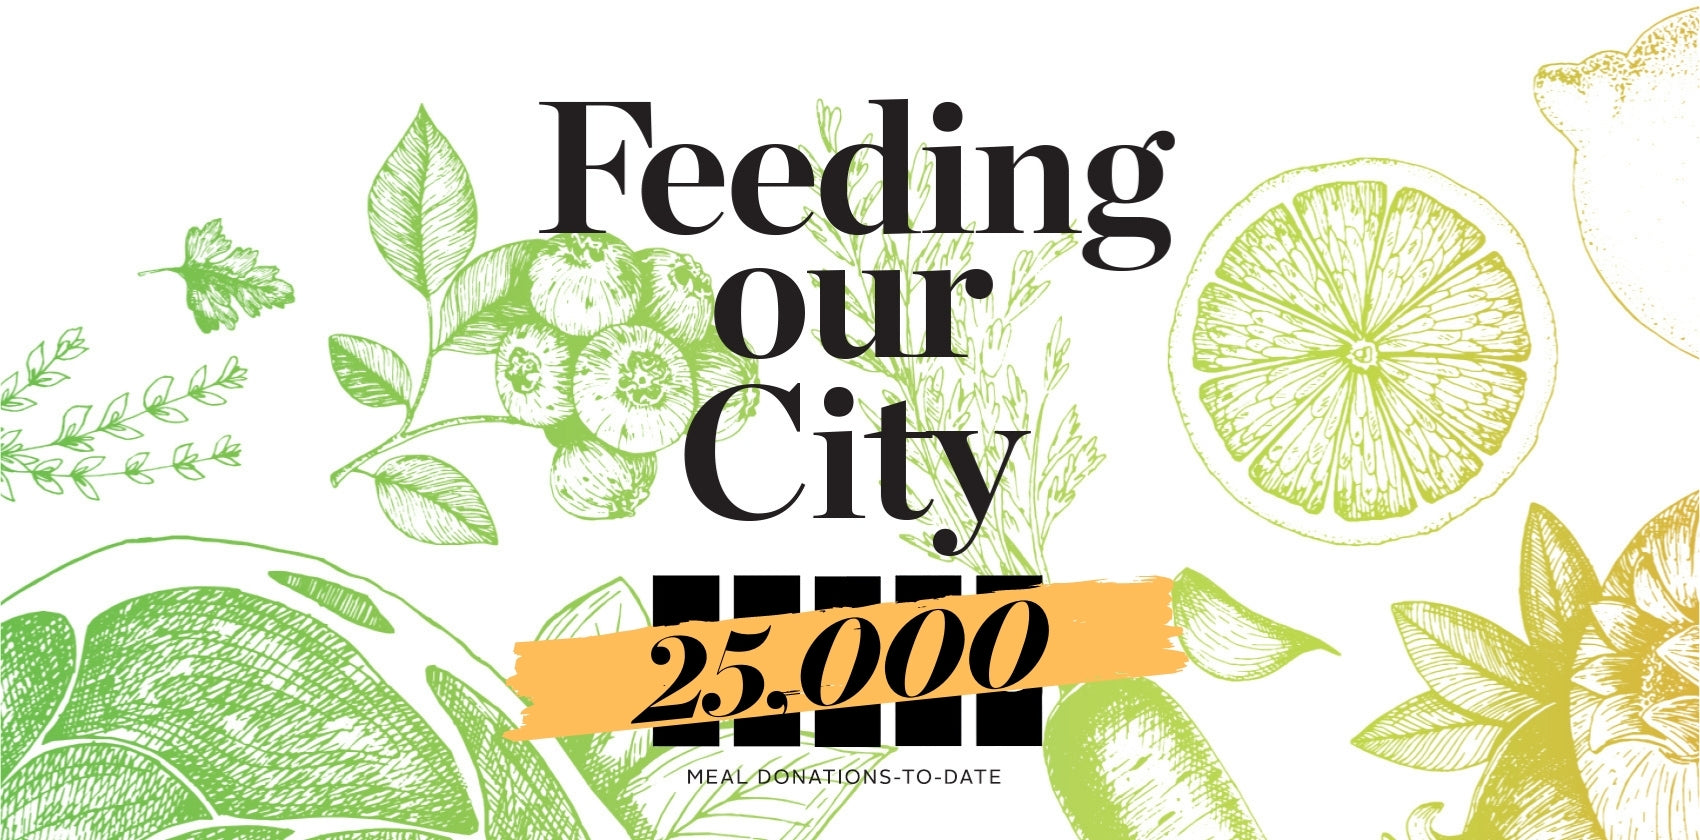 Feeding Our City - 25,000 meal donations to date